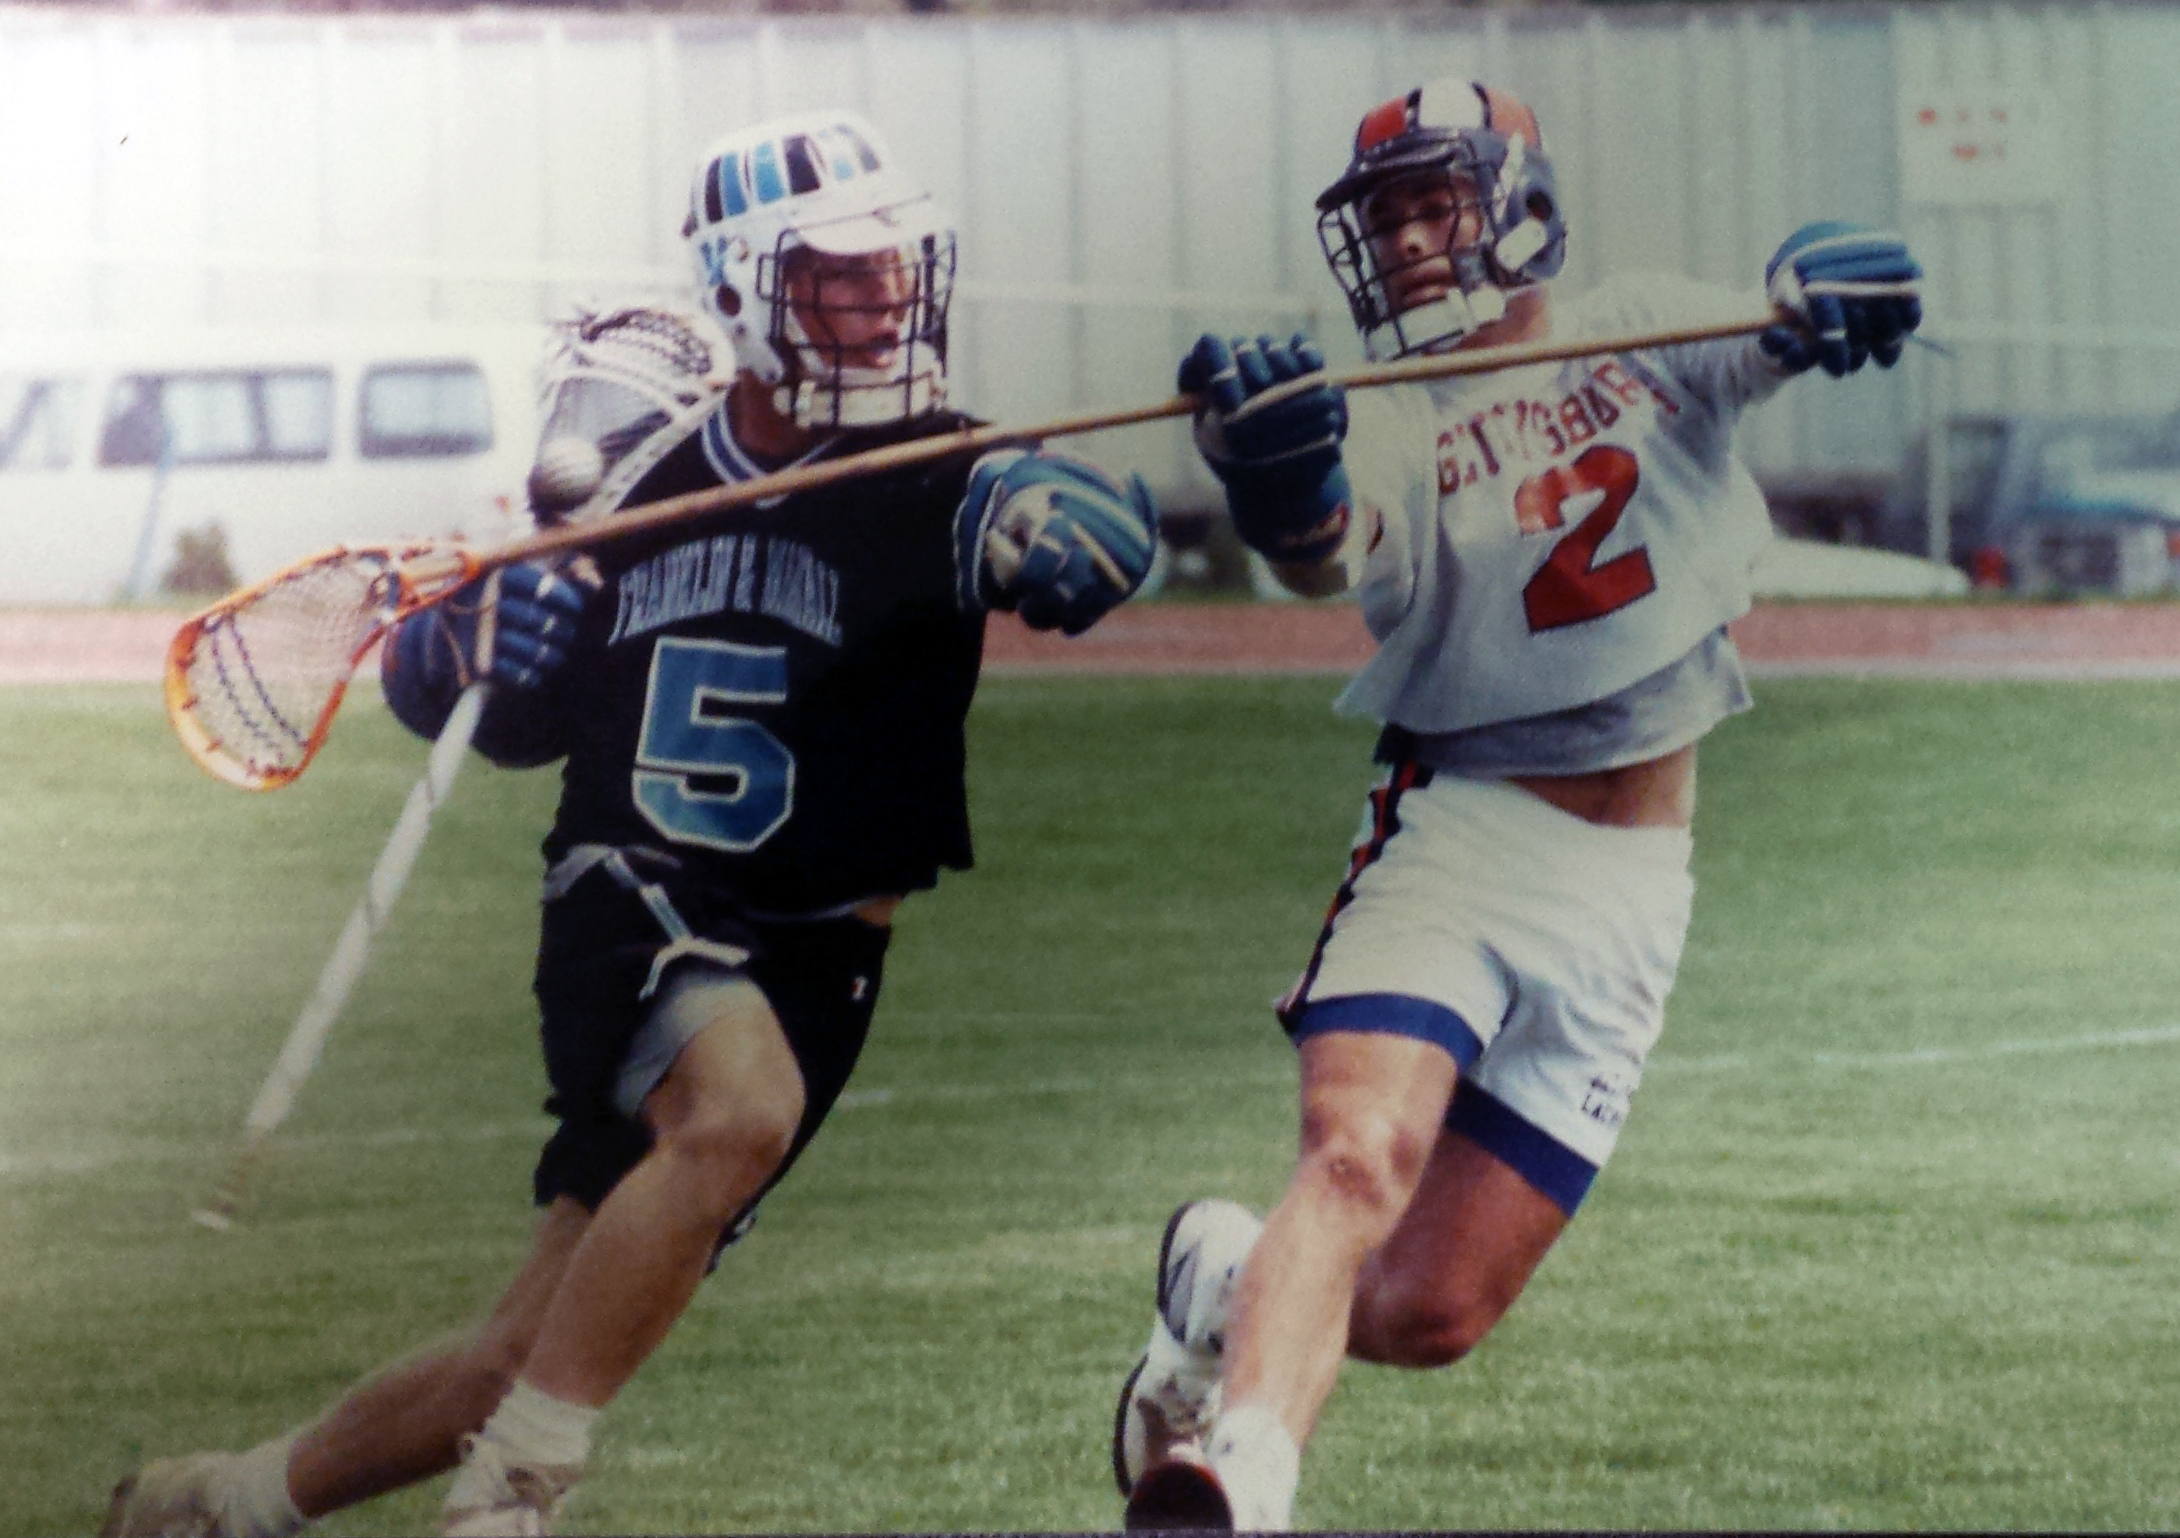 Gettysburg College All-American defenseman Bill Stedman (2 white) covering Franklin and Marshall attackman and Hunter Fogg (5 blue) in 1991.